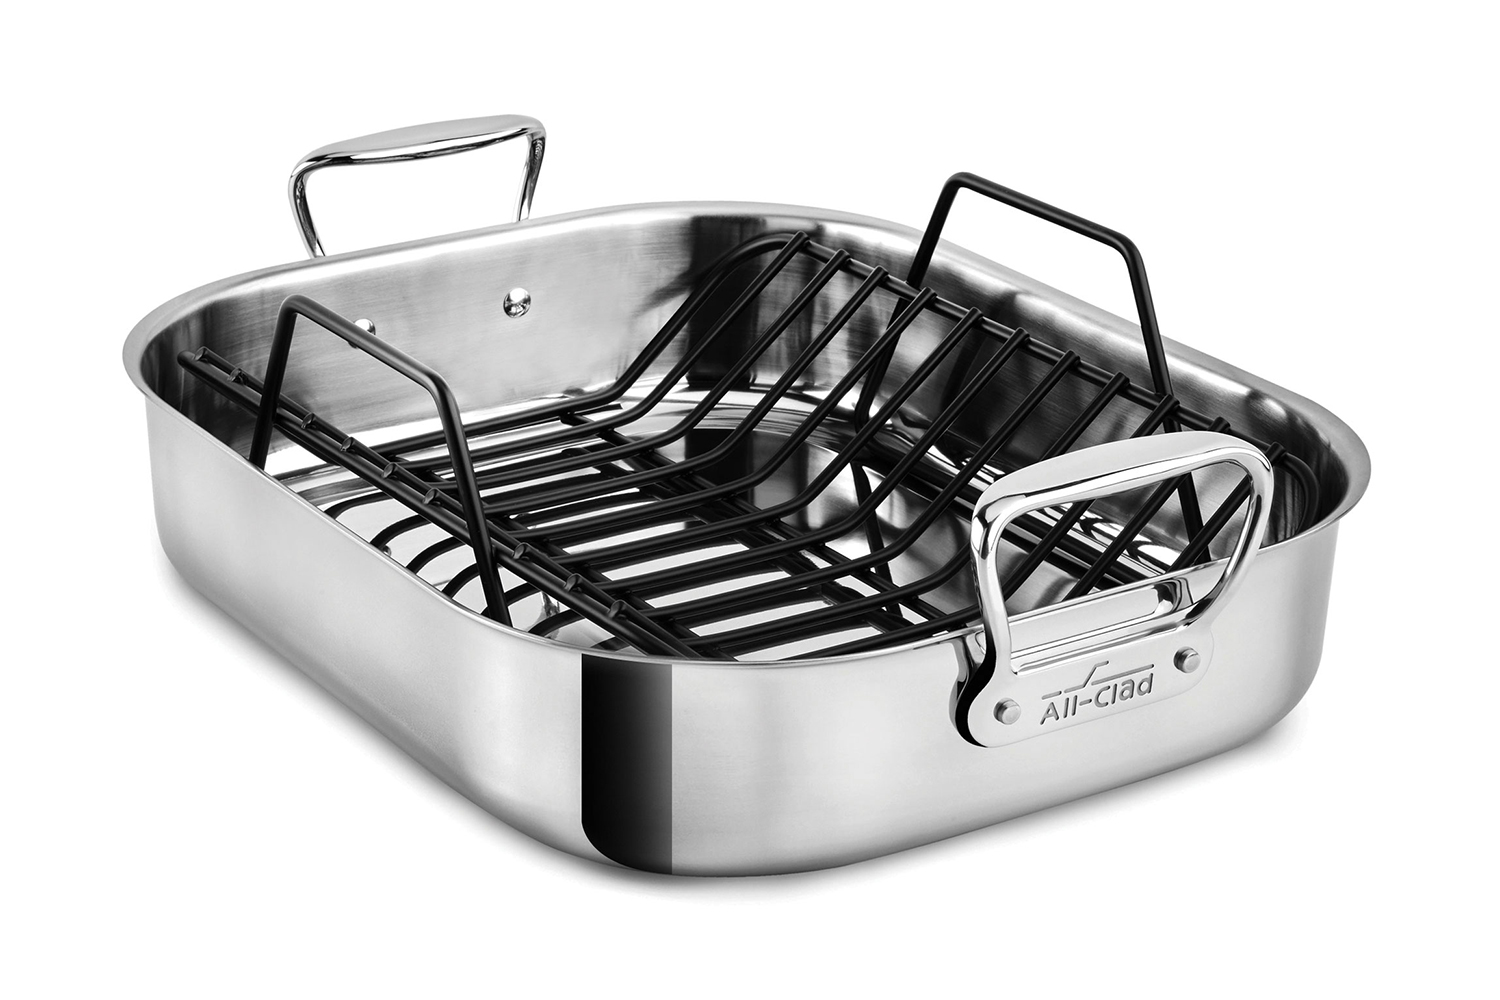 All-Clad Stainless Steel 16 x 13 inch Large Roaster w/Rack